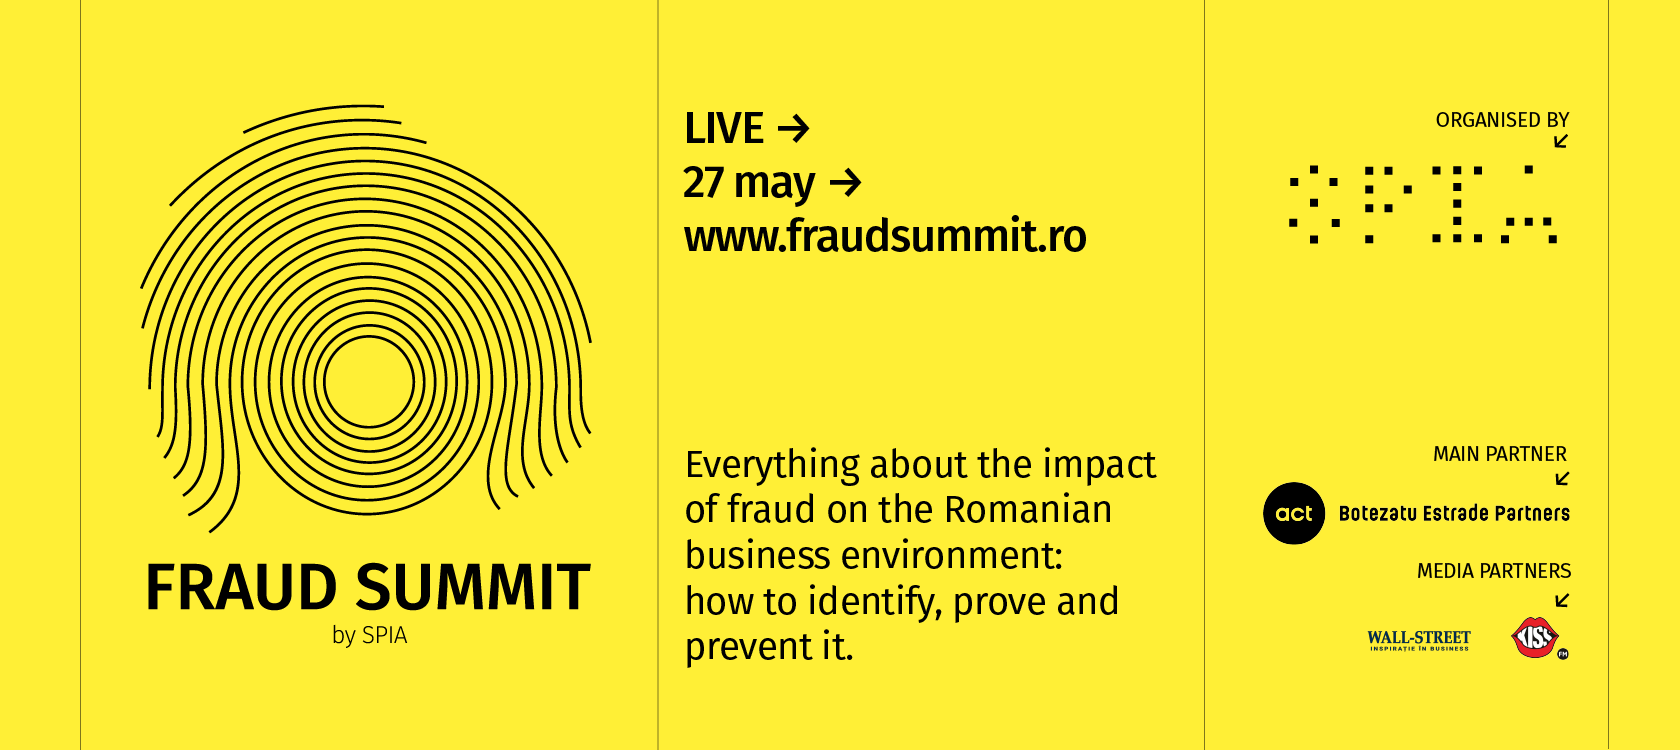 Banner image about FRAUD SUMMIT, an event taking place on 27 May 2021